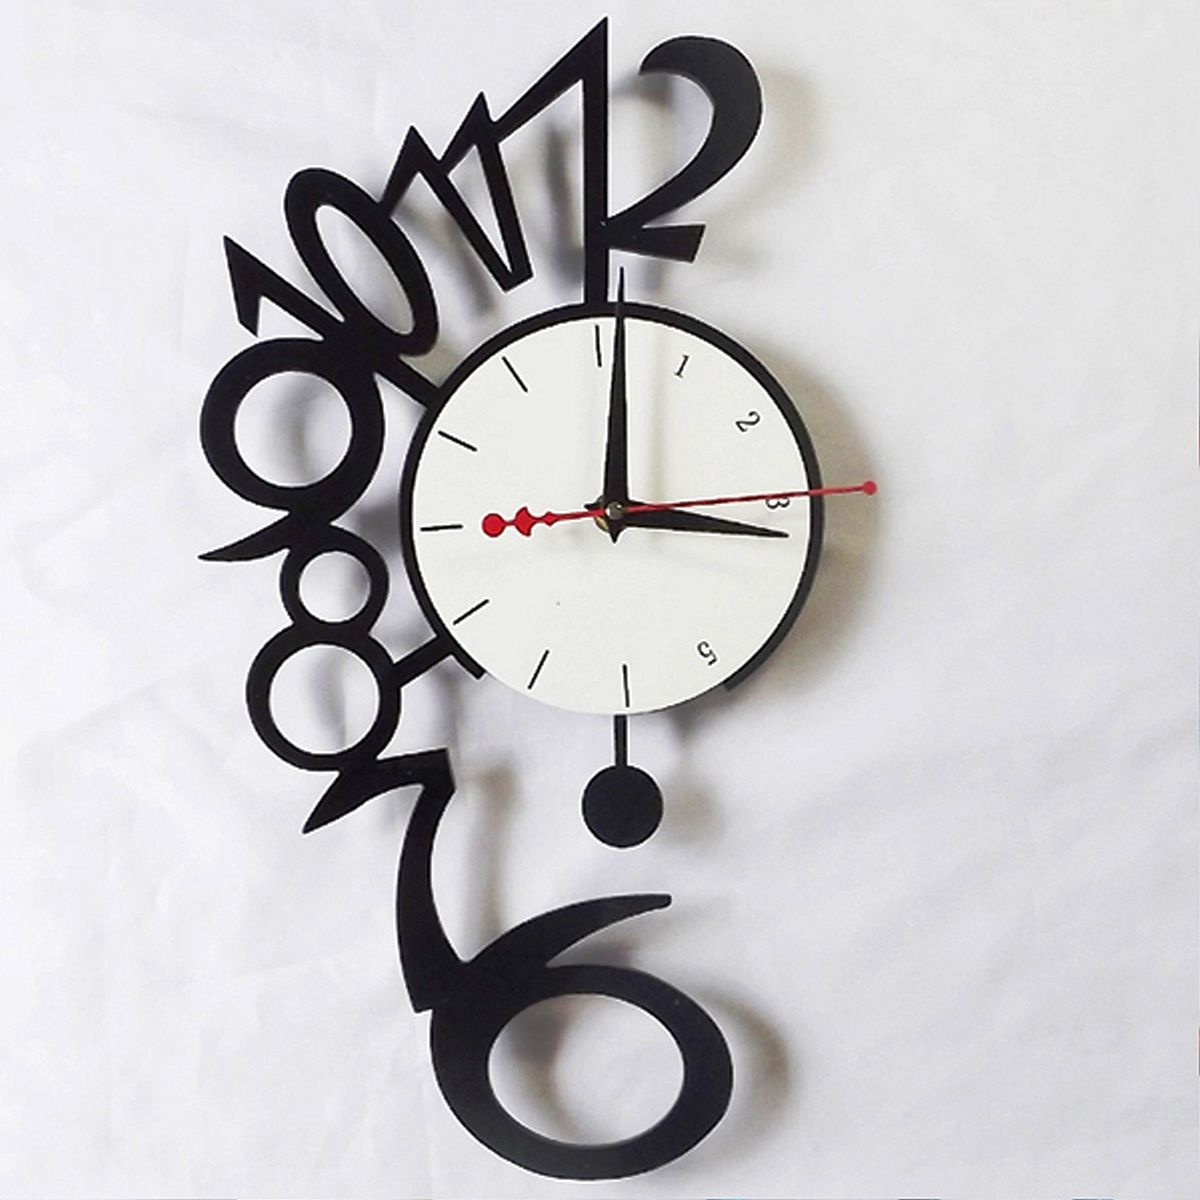 22 Best Unique Home Clock Ideas For Amazing Wall Decoration Freshouz Com Cool Clocks Clock Design Home Clock